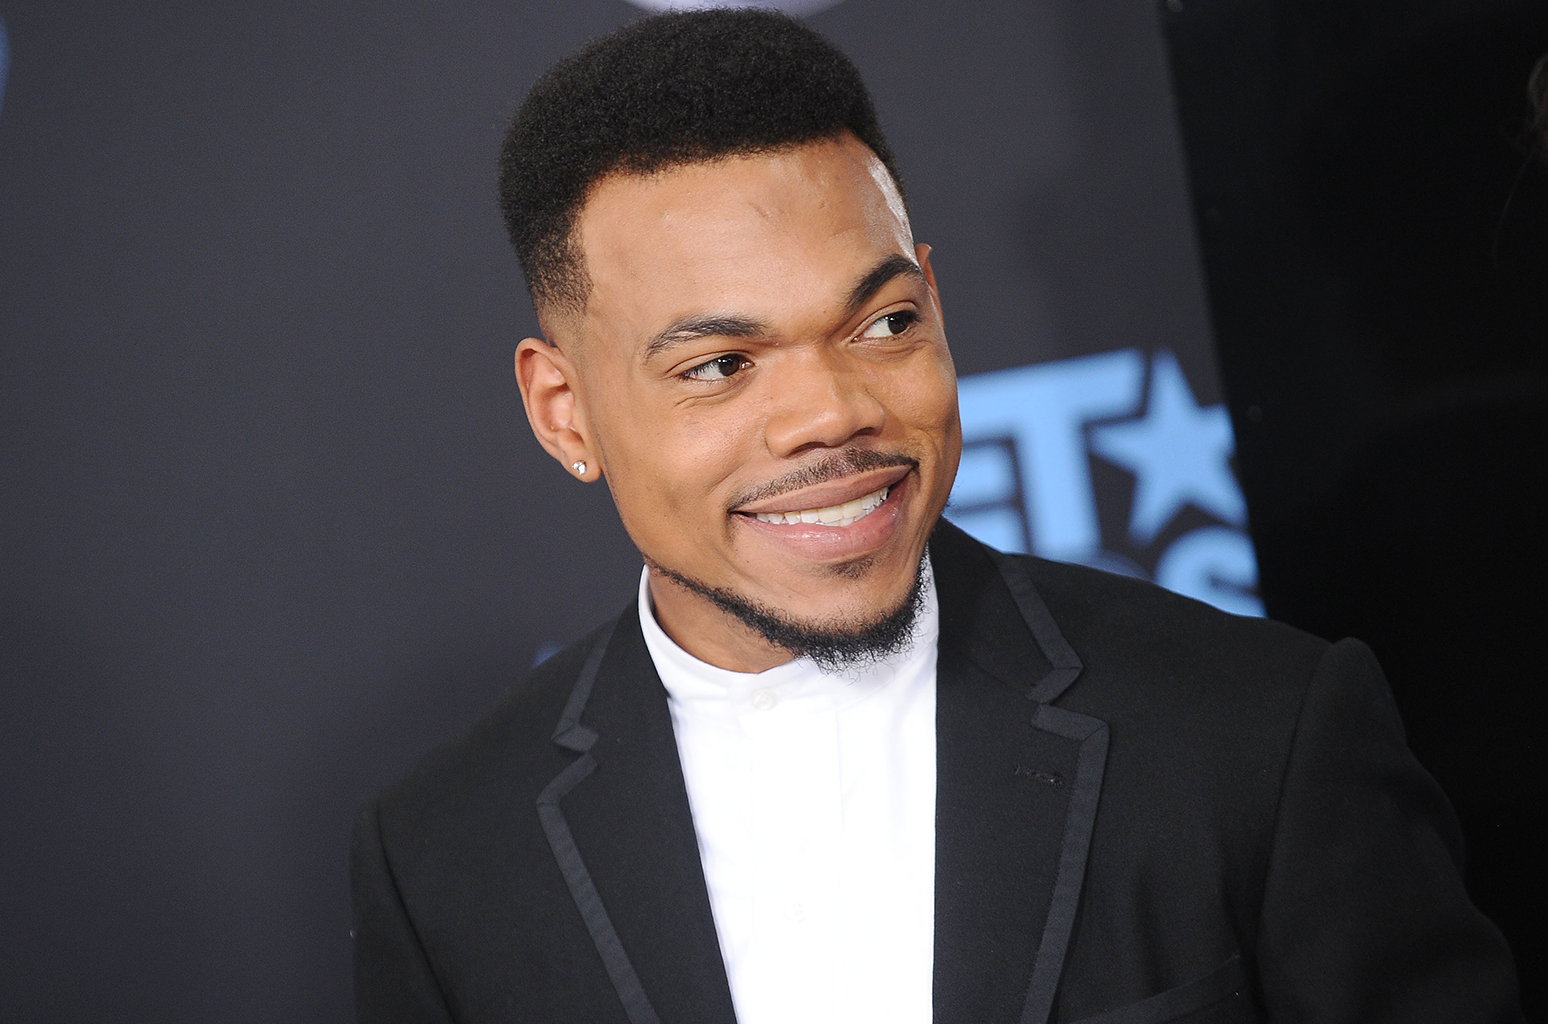 Google Donates $1.5M to Chance The Rapper's Non-profit Organization